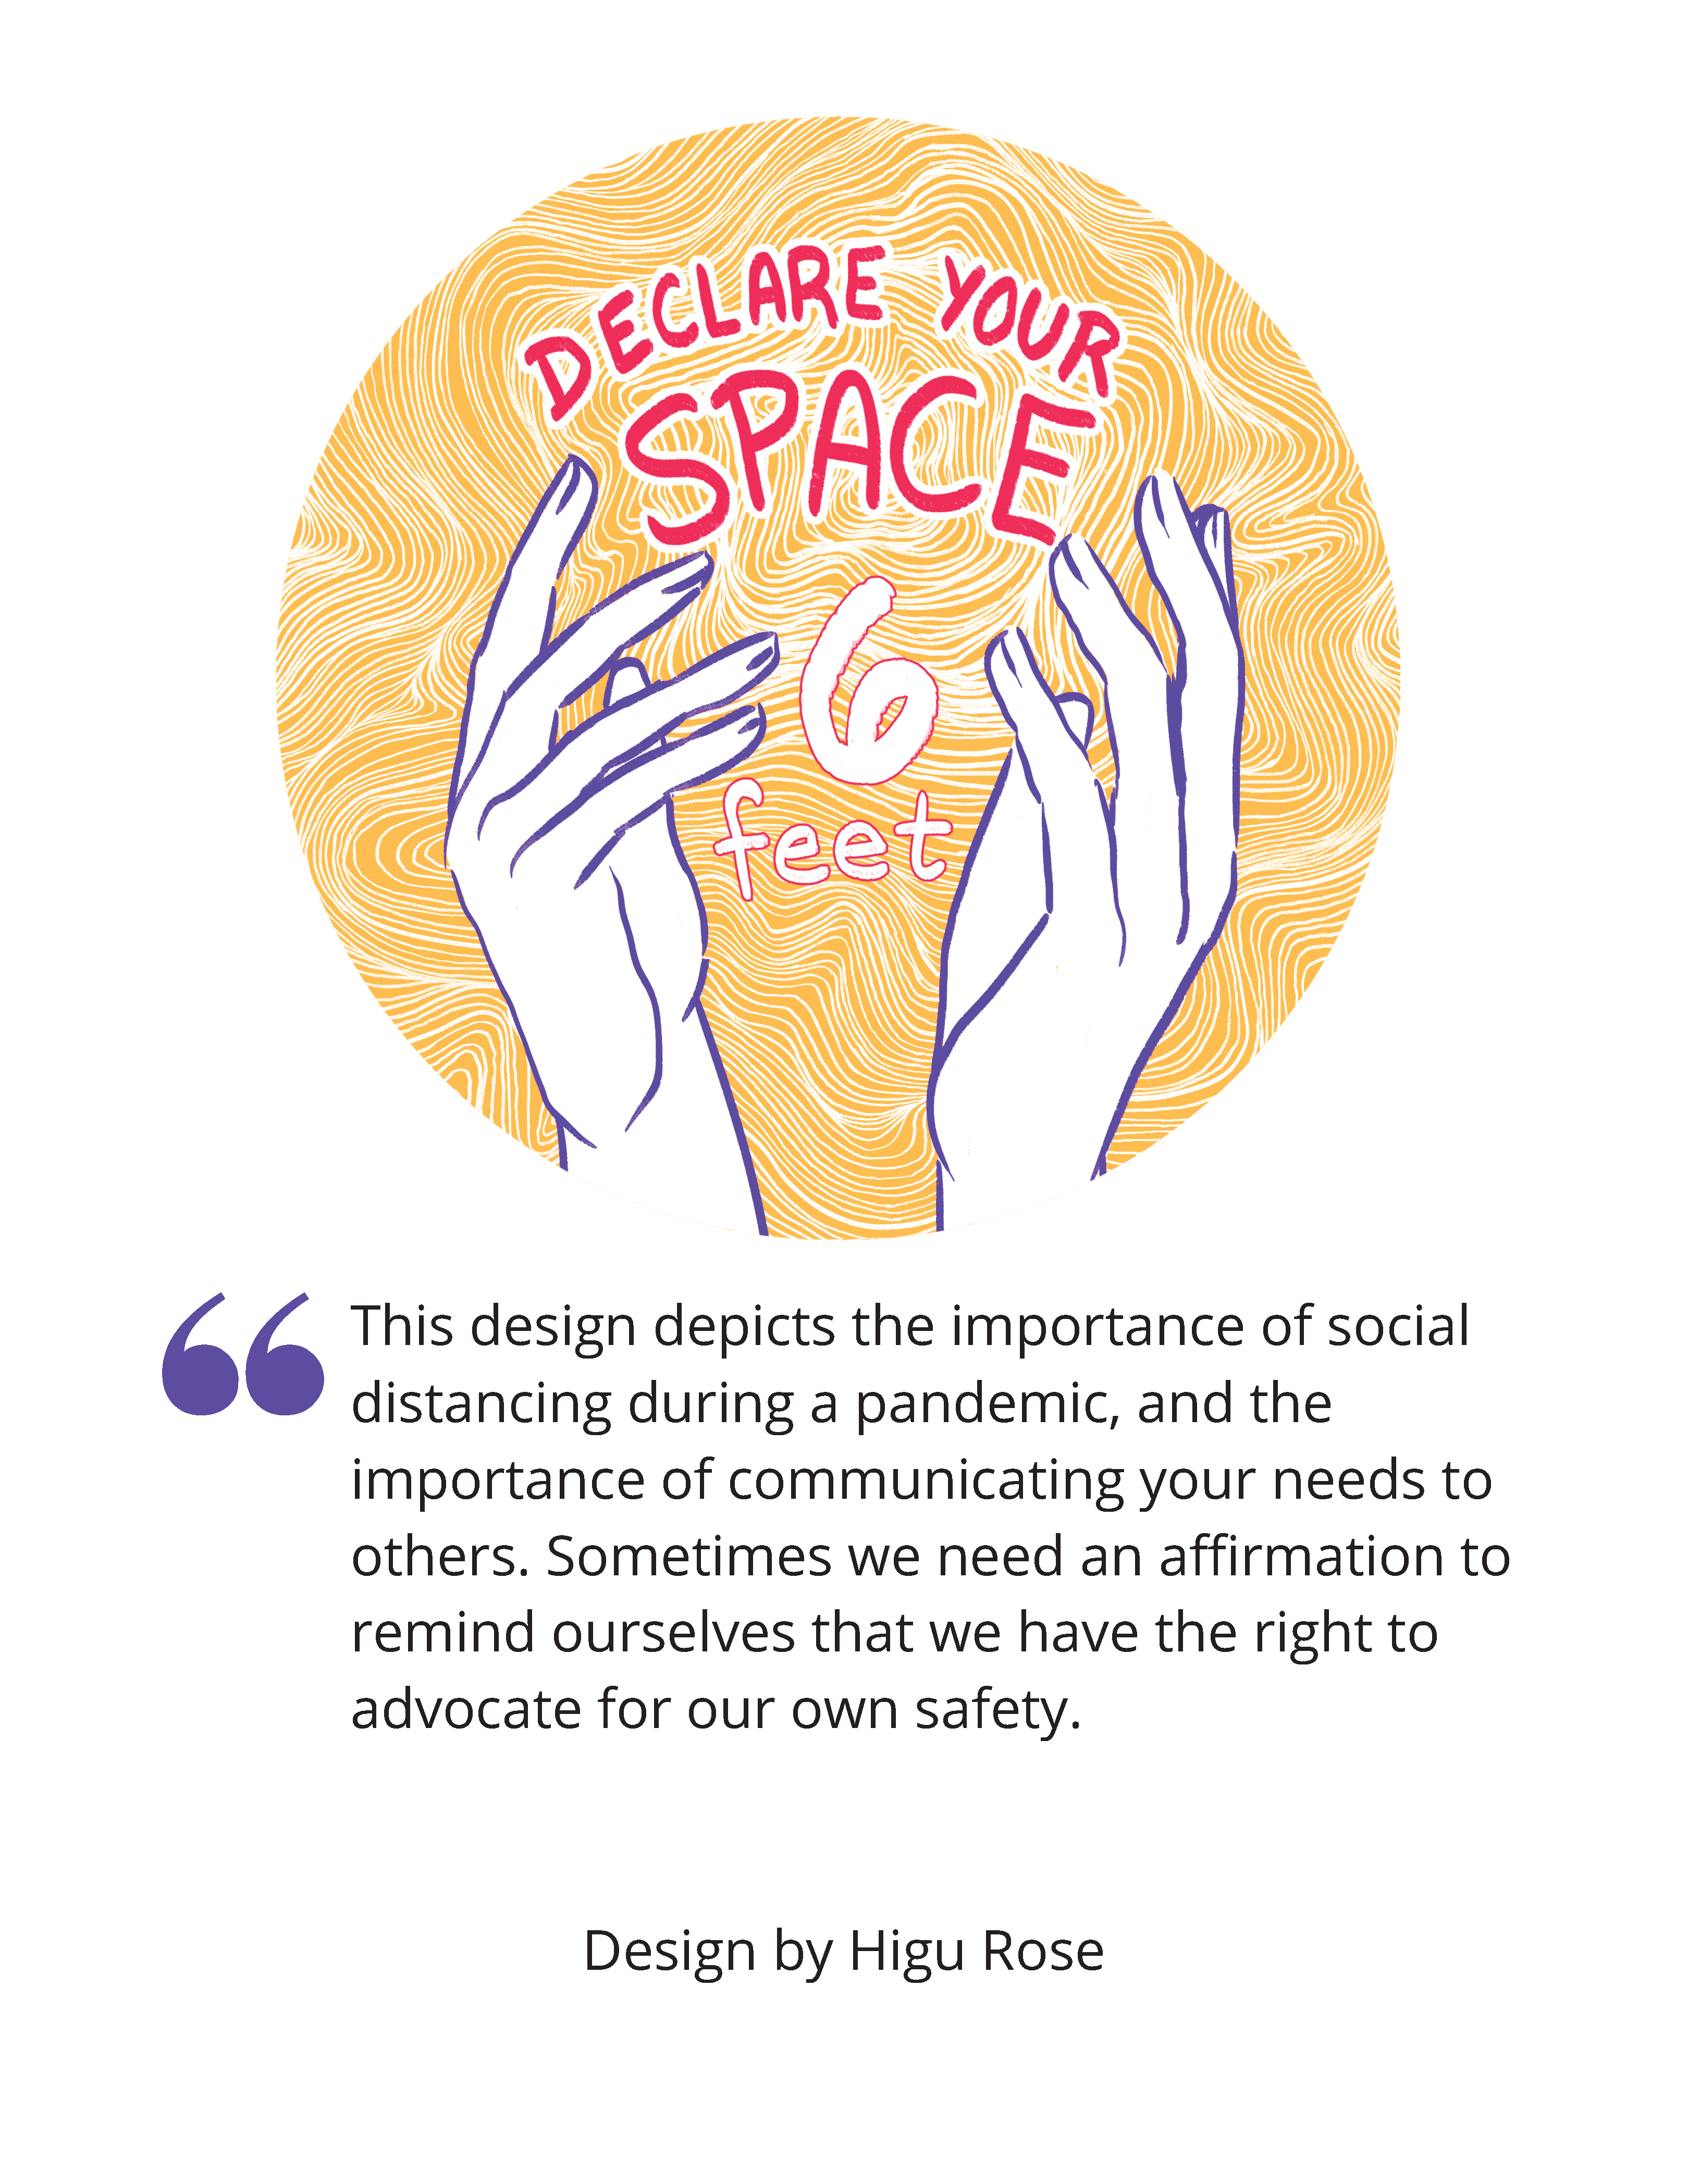 """Image shows a yellow background with white waves, and two hands illustrated in the center. Between the hands, the text """"Declare your Space - 6 Feet"""" appears."""